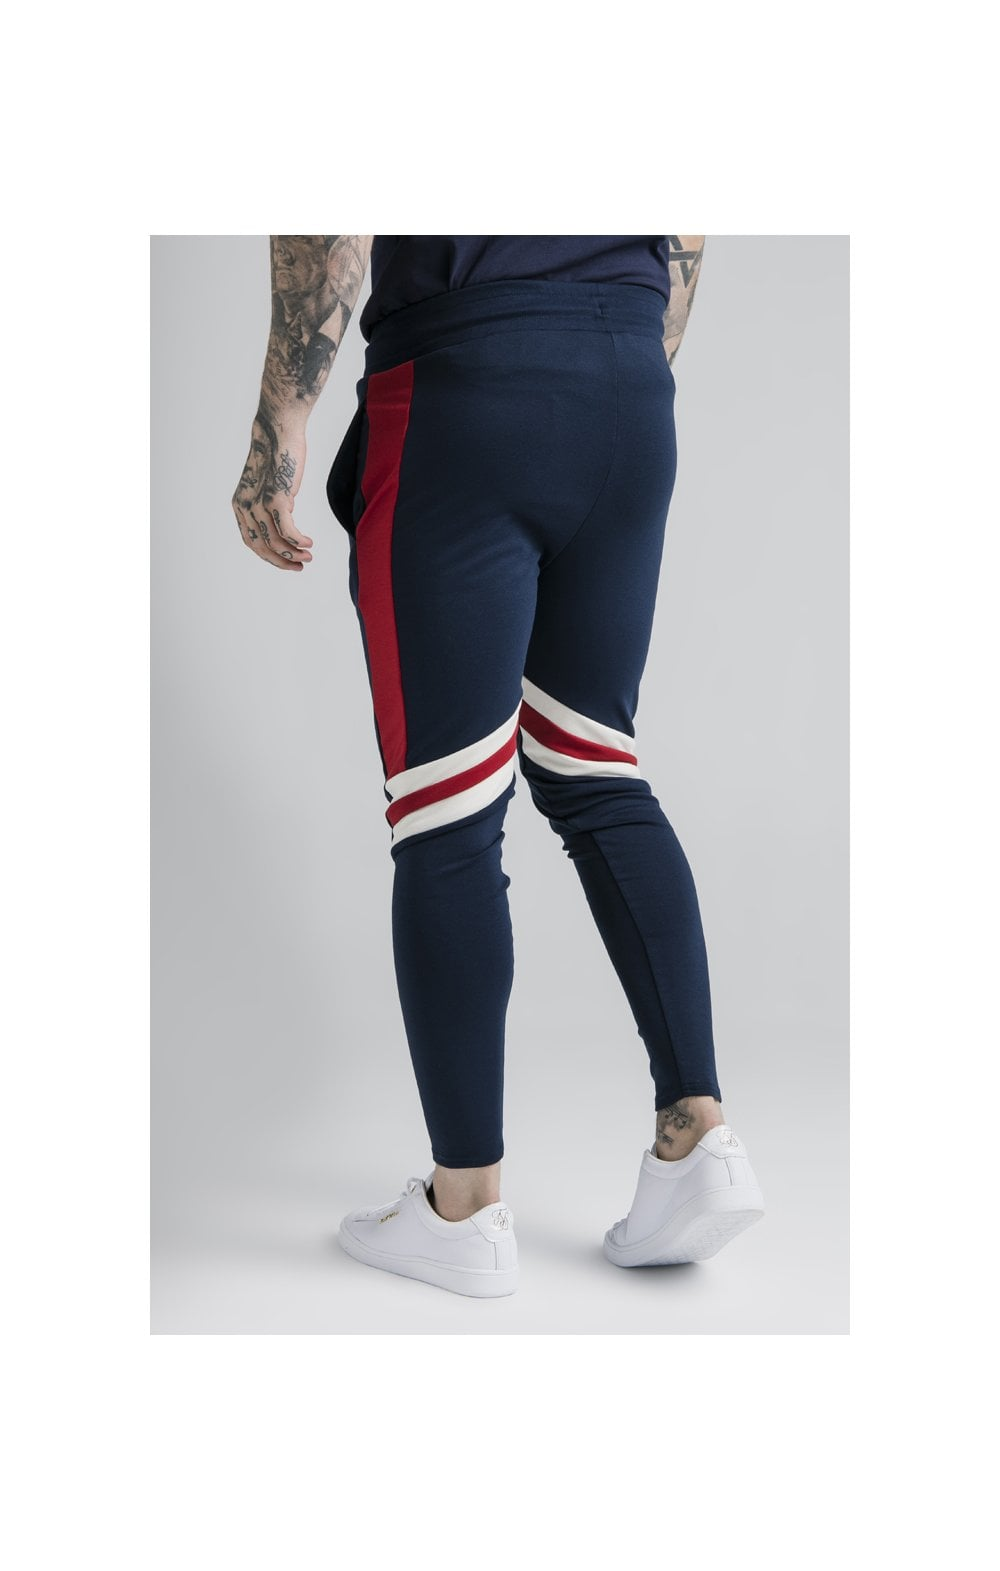 SikSilk Retro Panel Track Pants - Navy, Red & Off White (1)